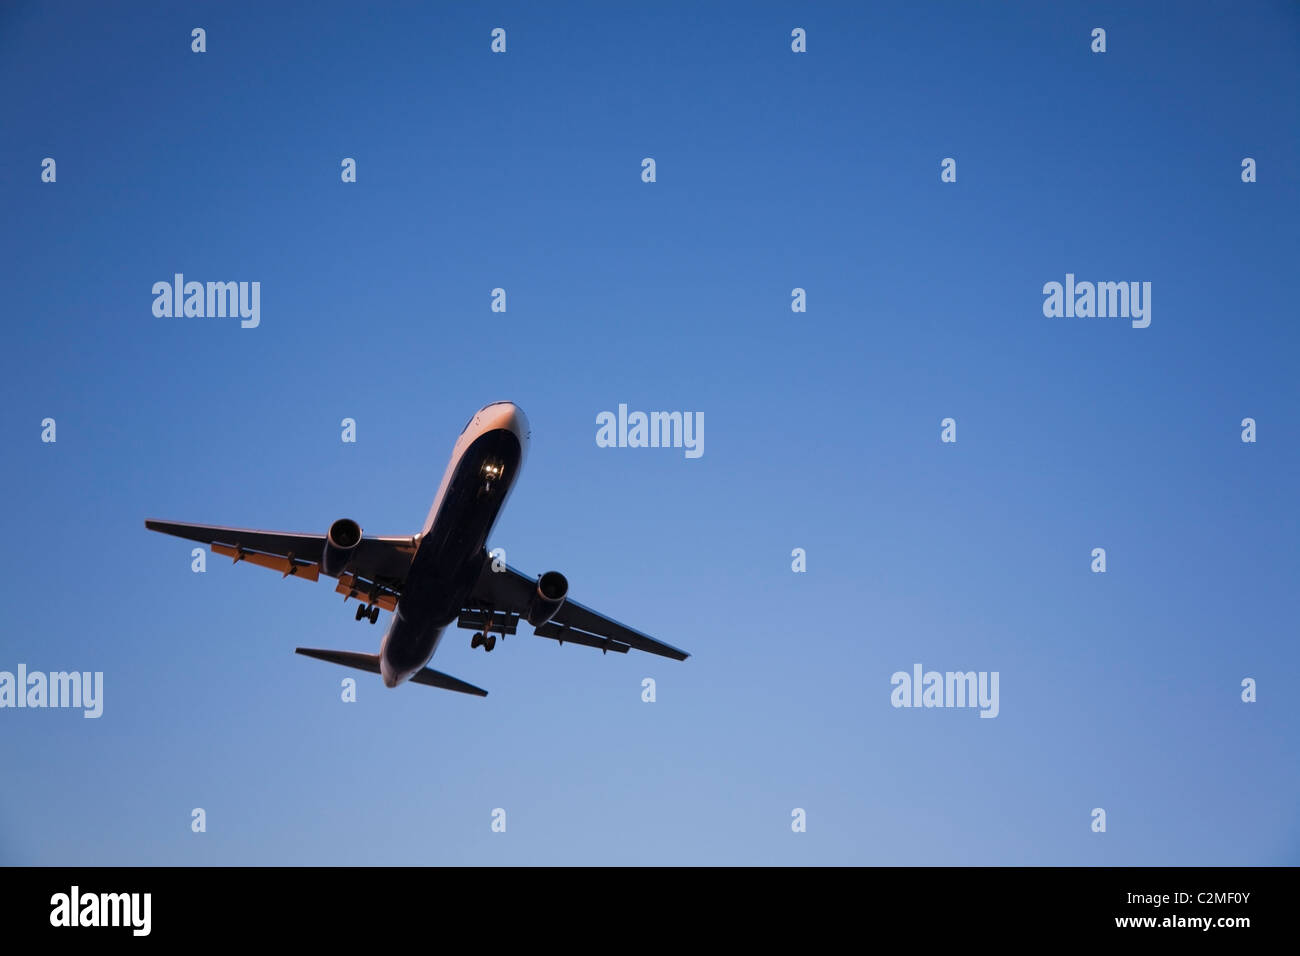 Commercial Jet Airplane Landing; Dorval, Quebec, Canada - Stock Image